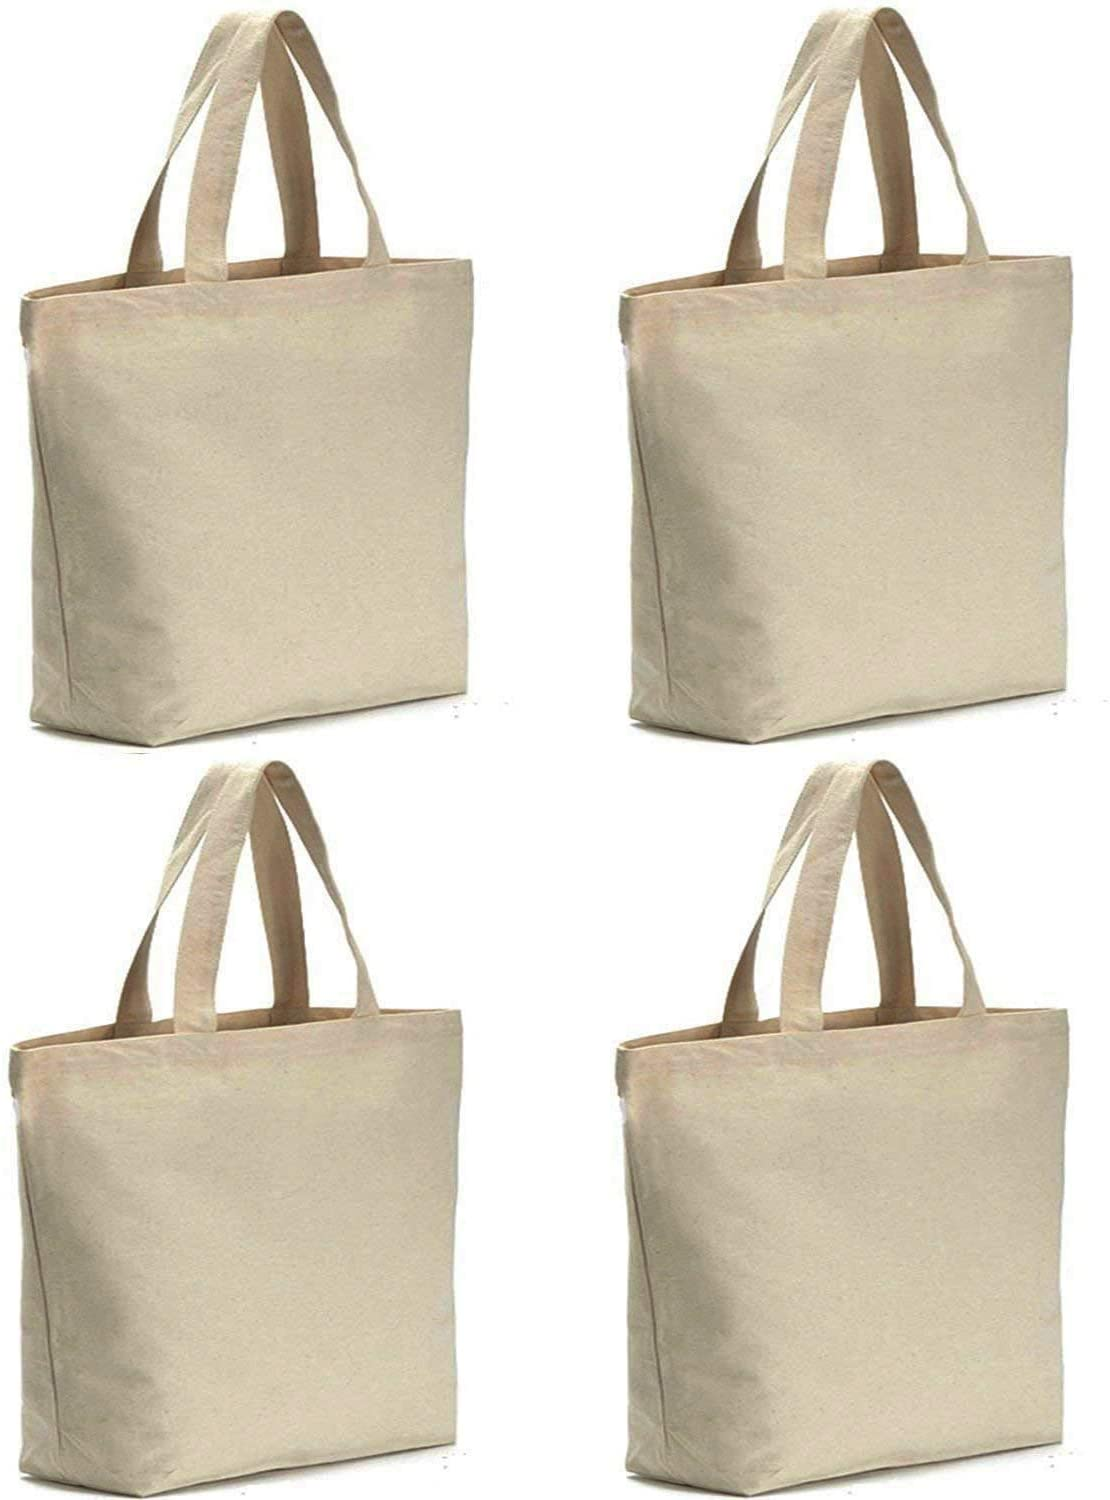 gifts-for-your-boss-totes